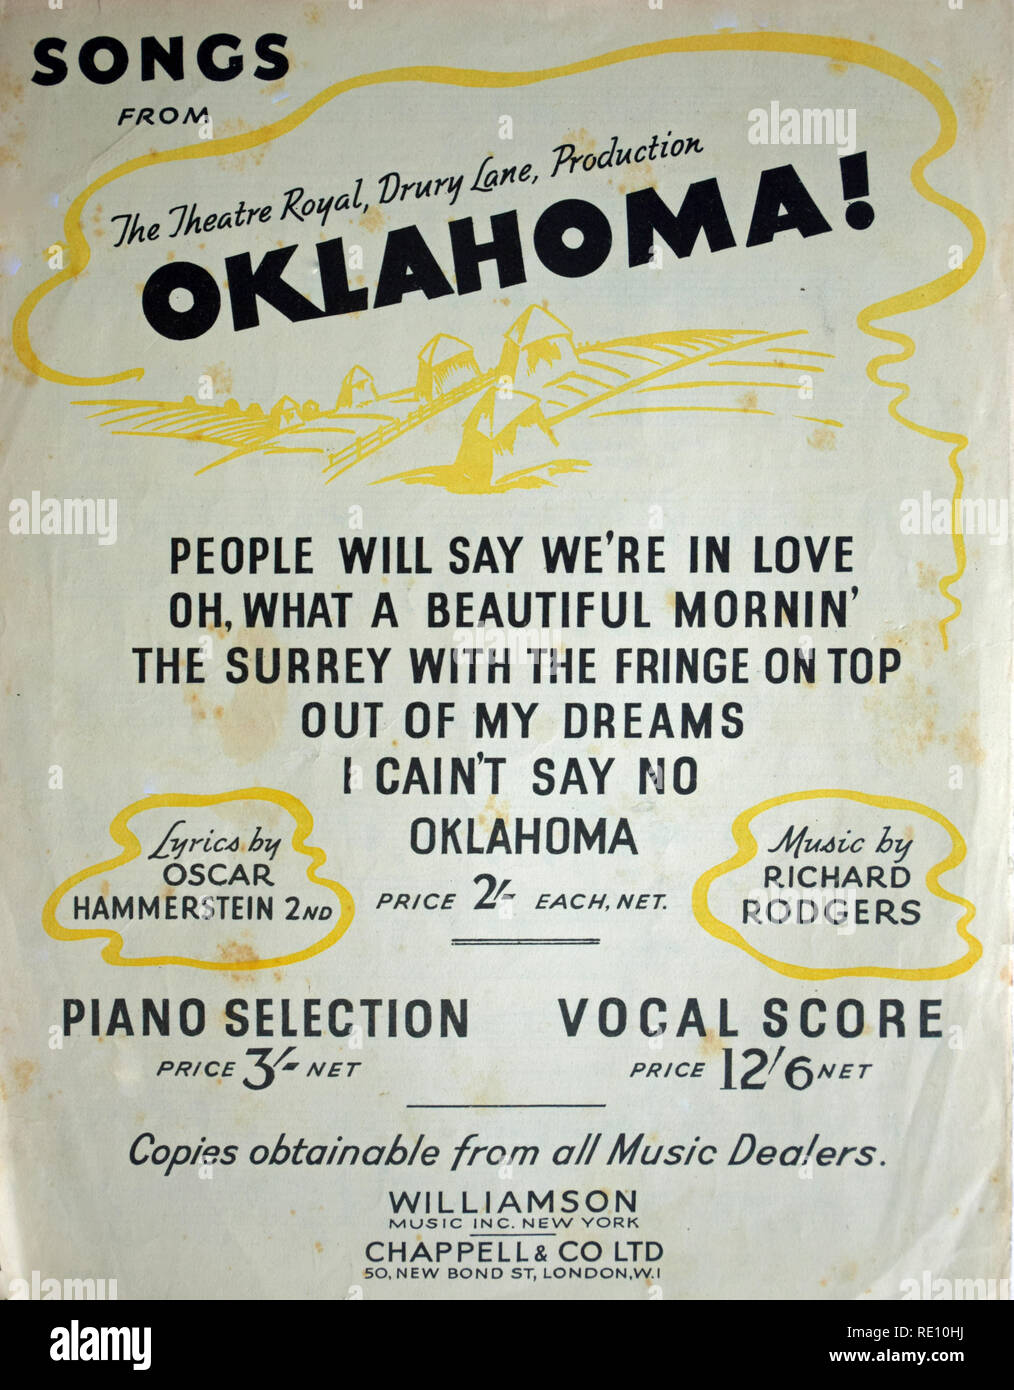 People will say we're in love (sheet music - rear cover) - Stock Image